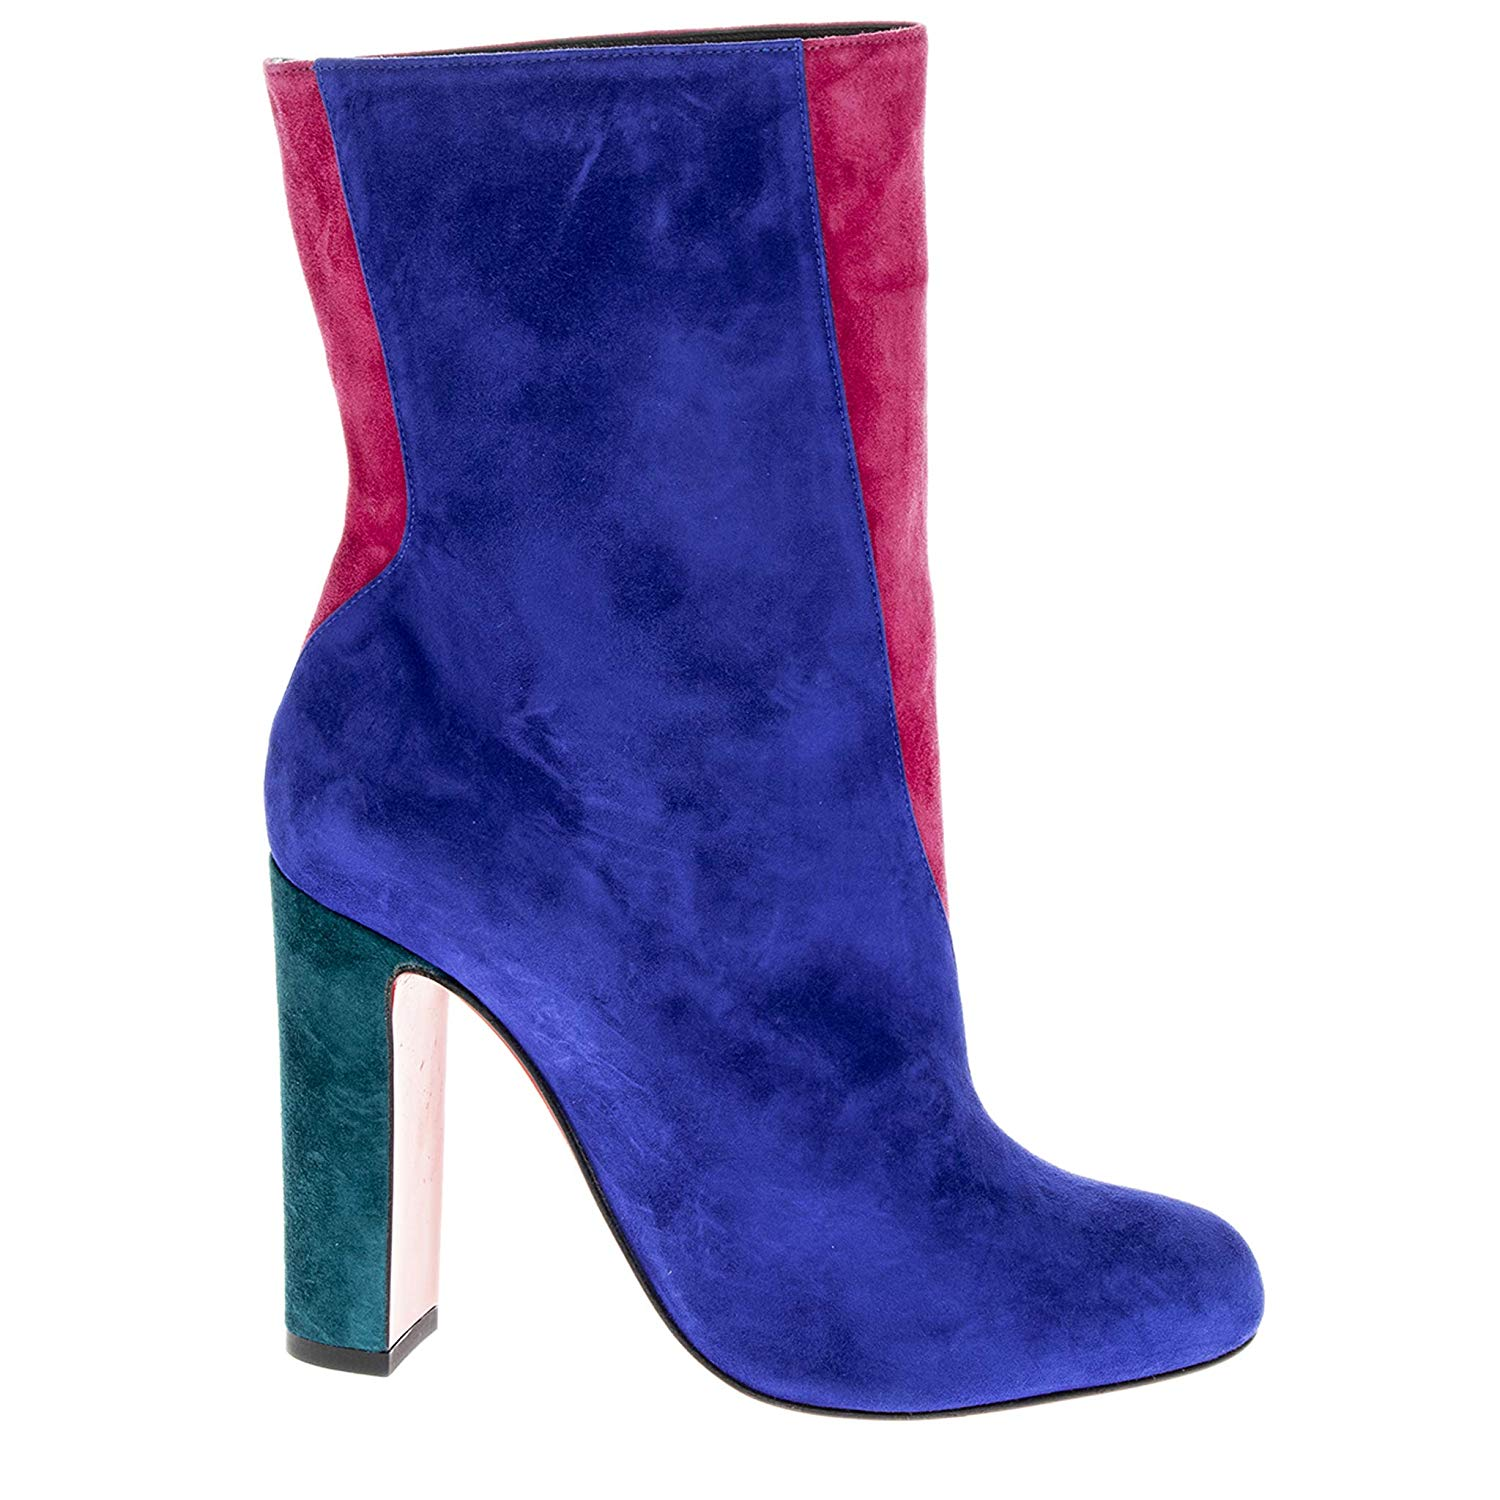 Christian Louboutin Botty Double Colorblock Suede Booties Blue Pink 02